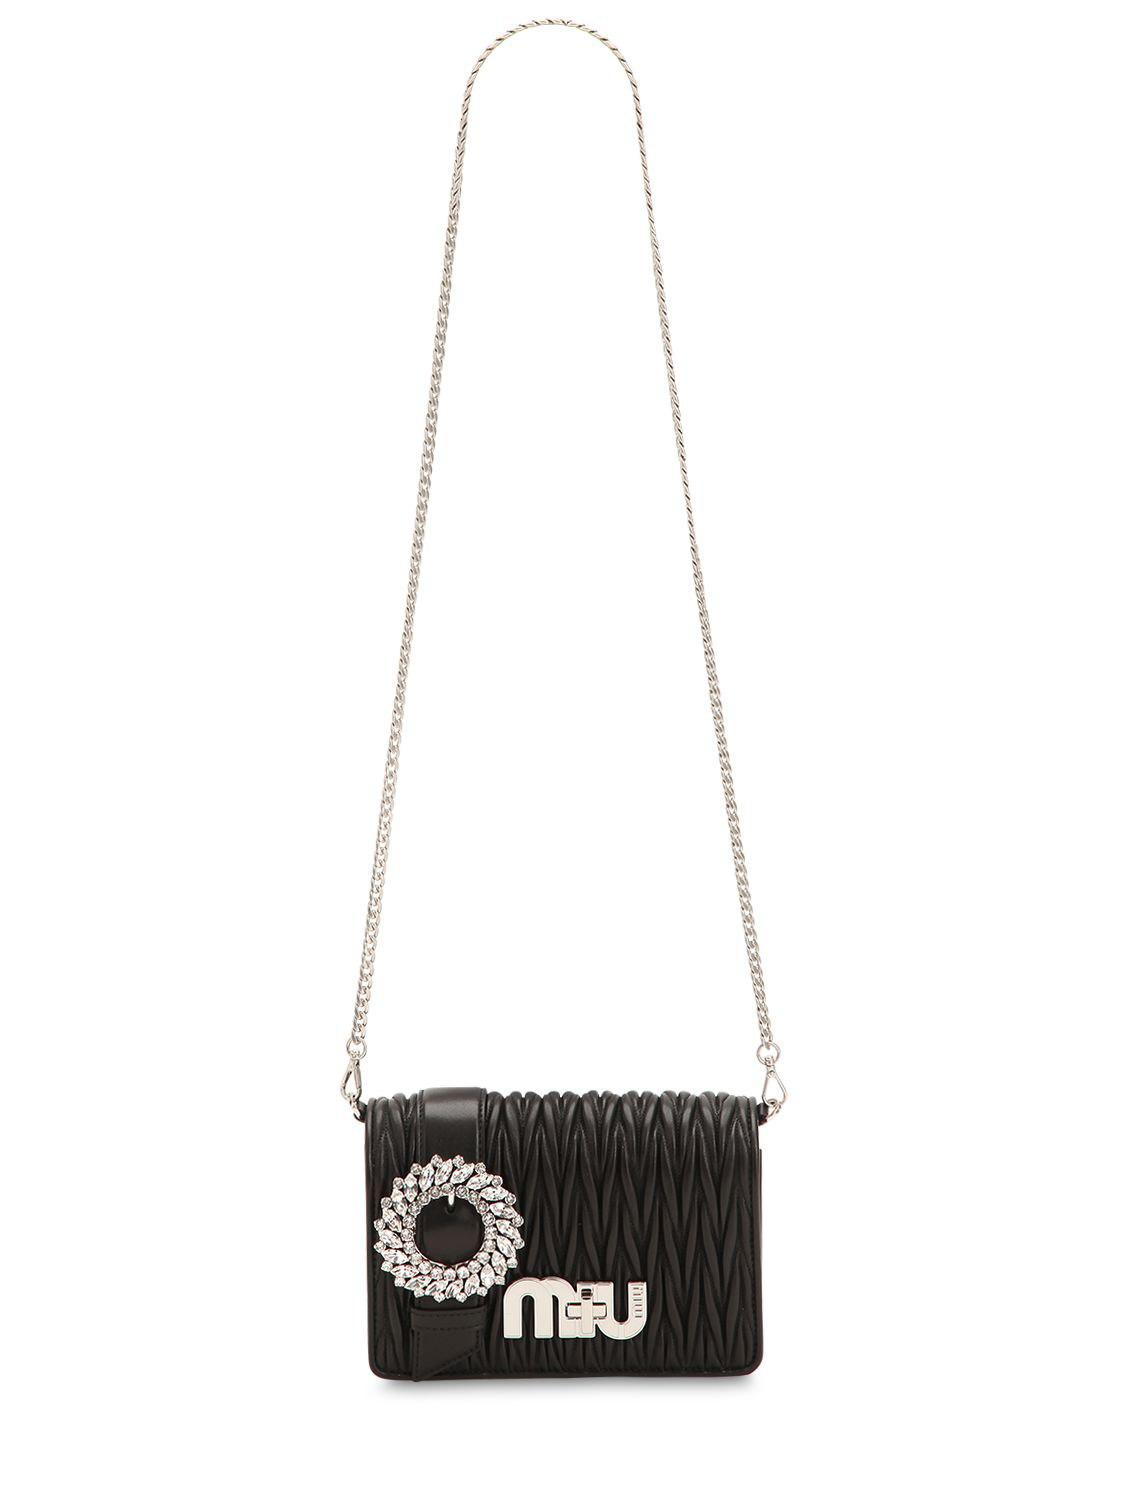 e17f0b18e0a7 Miu Miu - Black Mini Bag Shoulder Bag Women - Lyst. View fullscreen